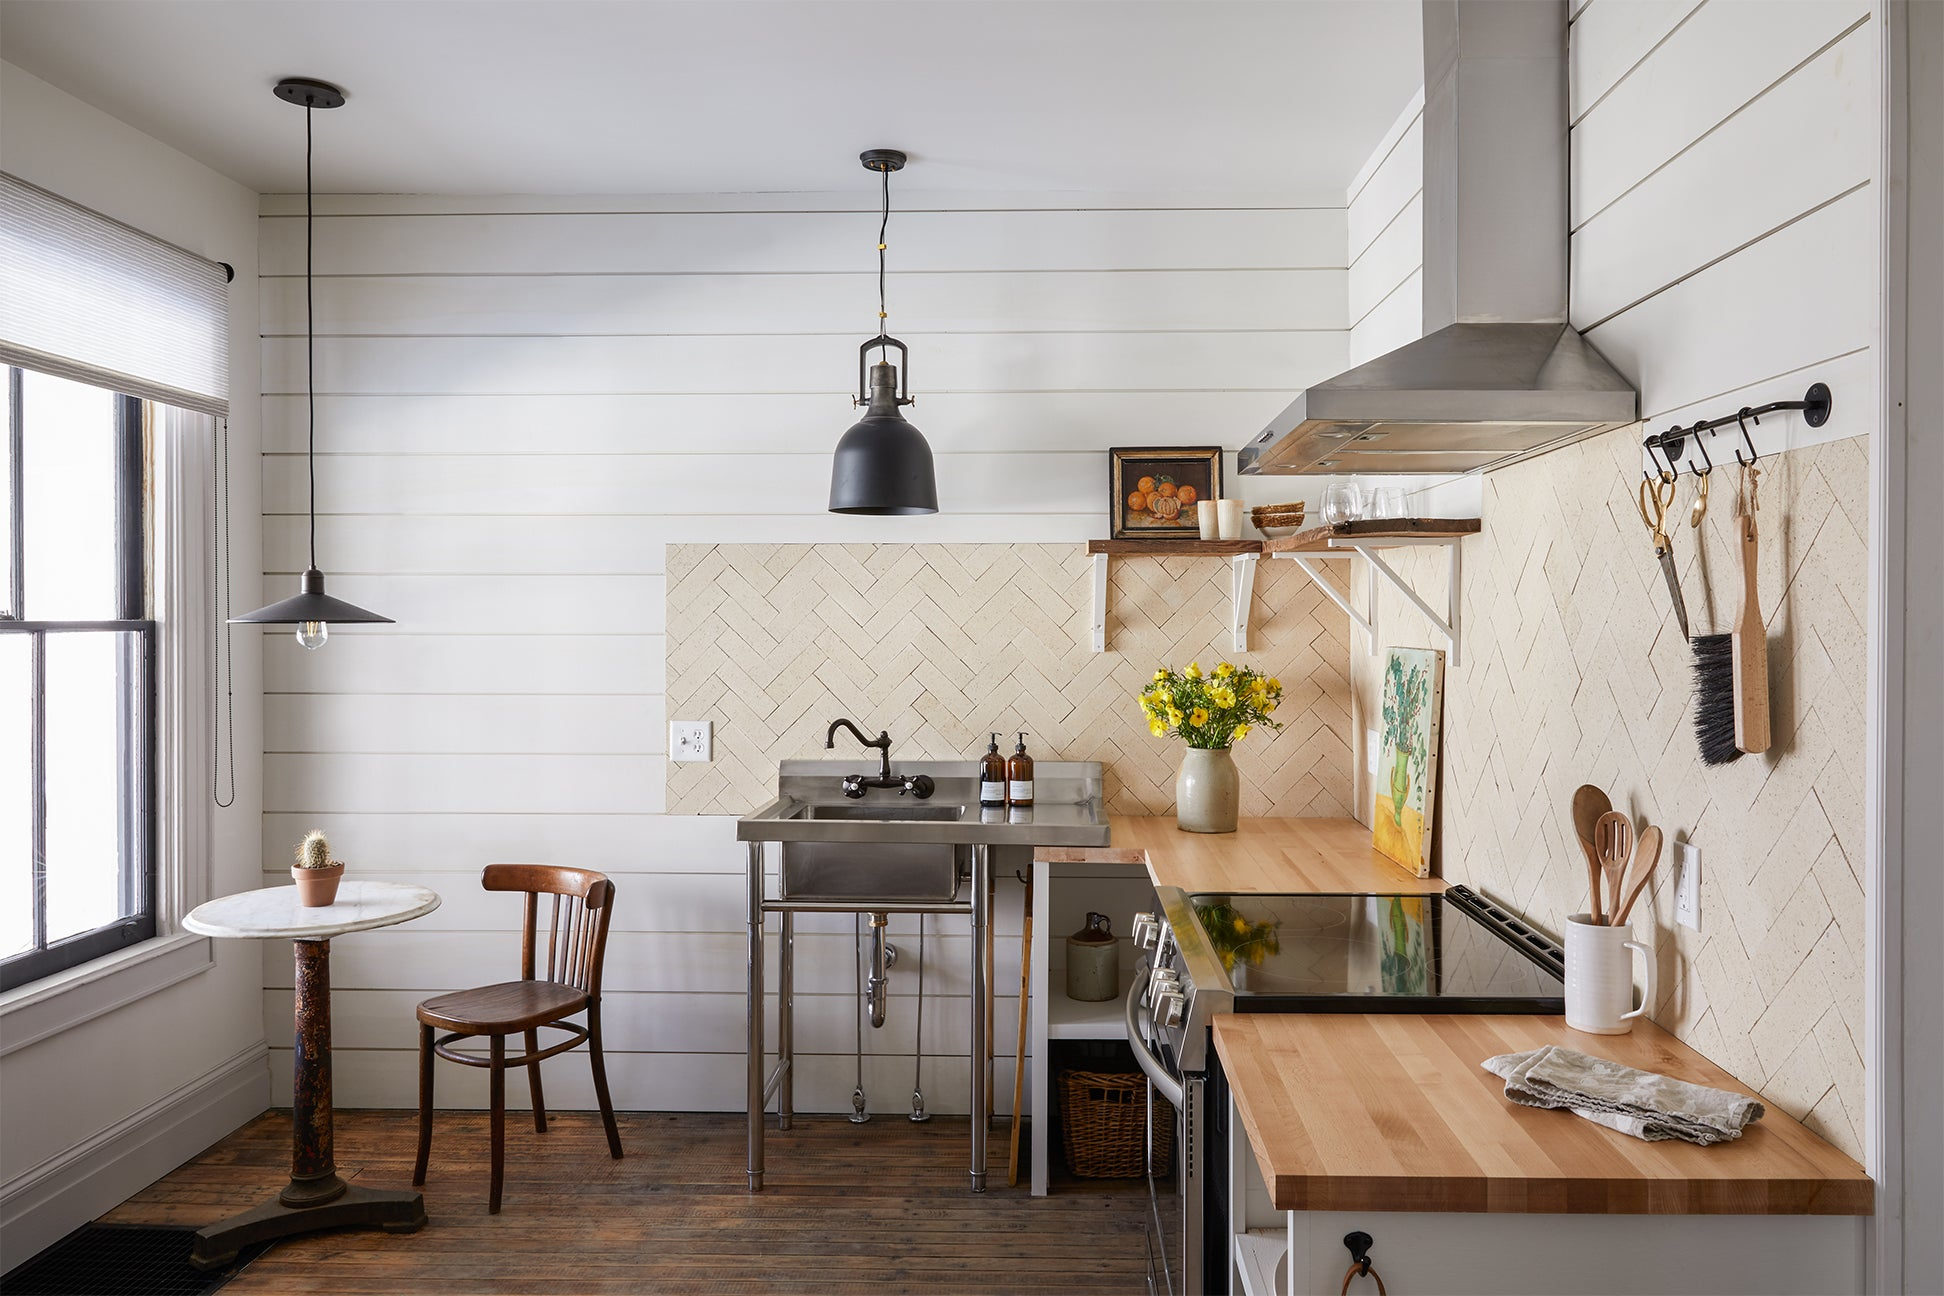 zio-and-sons-renovation-kitchen-domino